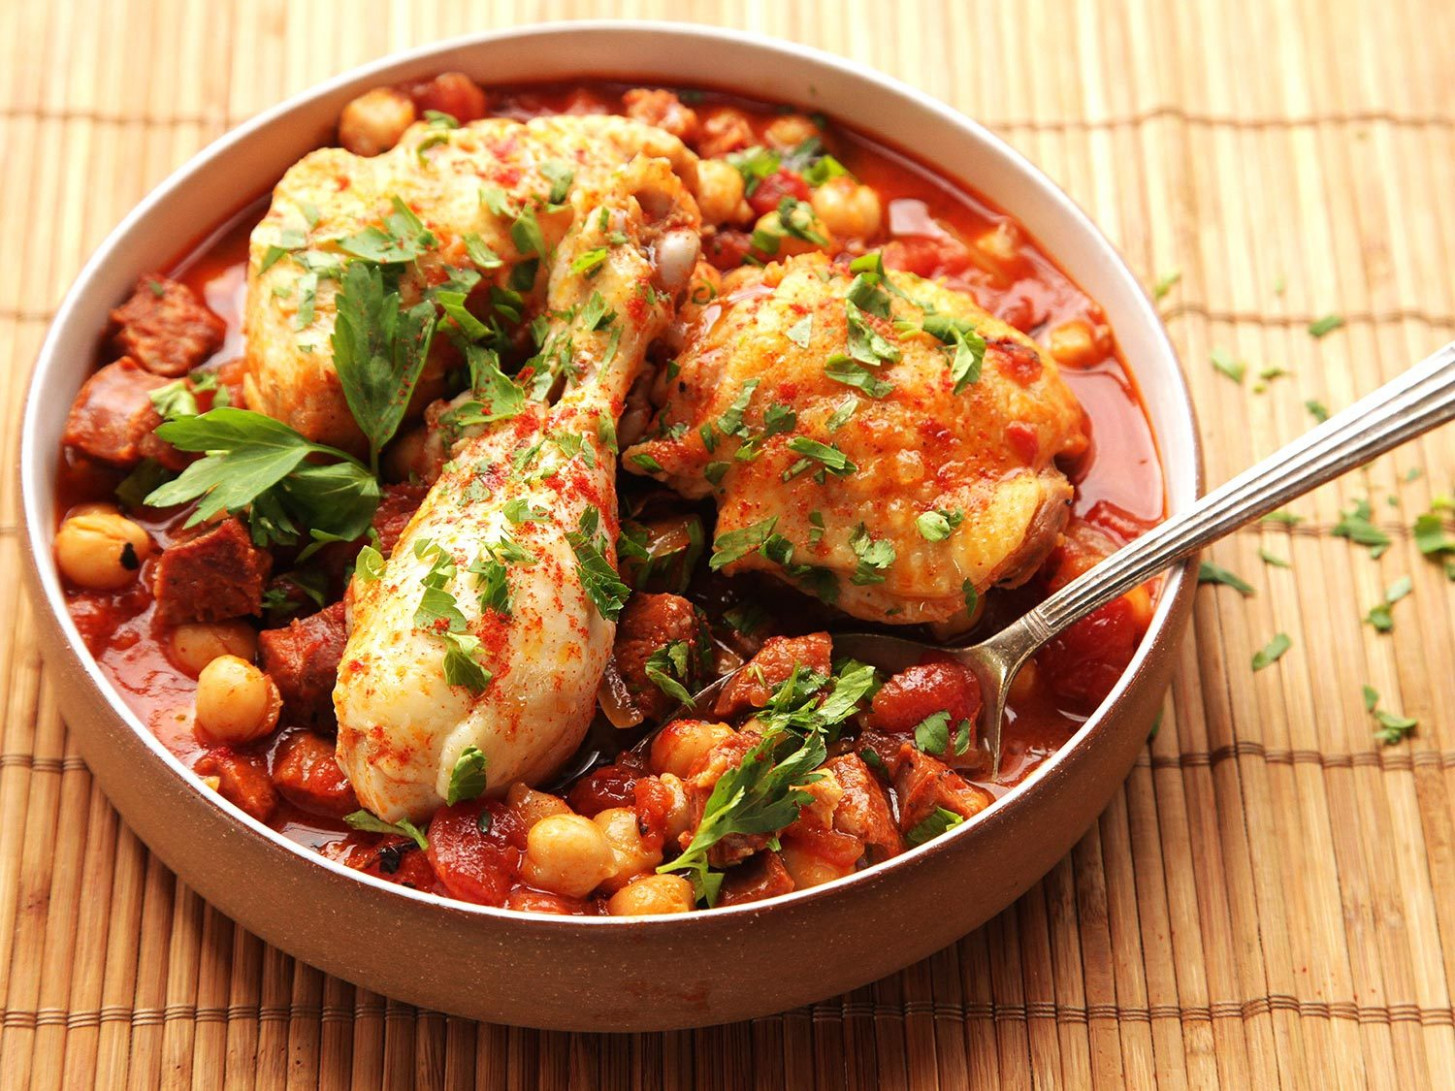 13 Minute Pressure Cooker Chicken With Chickpeas, Tomatoes, And Chorizo  Recipe - Recipes Electric Pressure Cooker Chicken